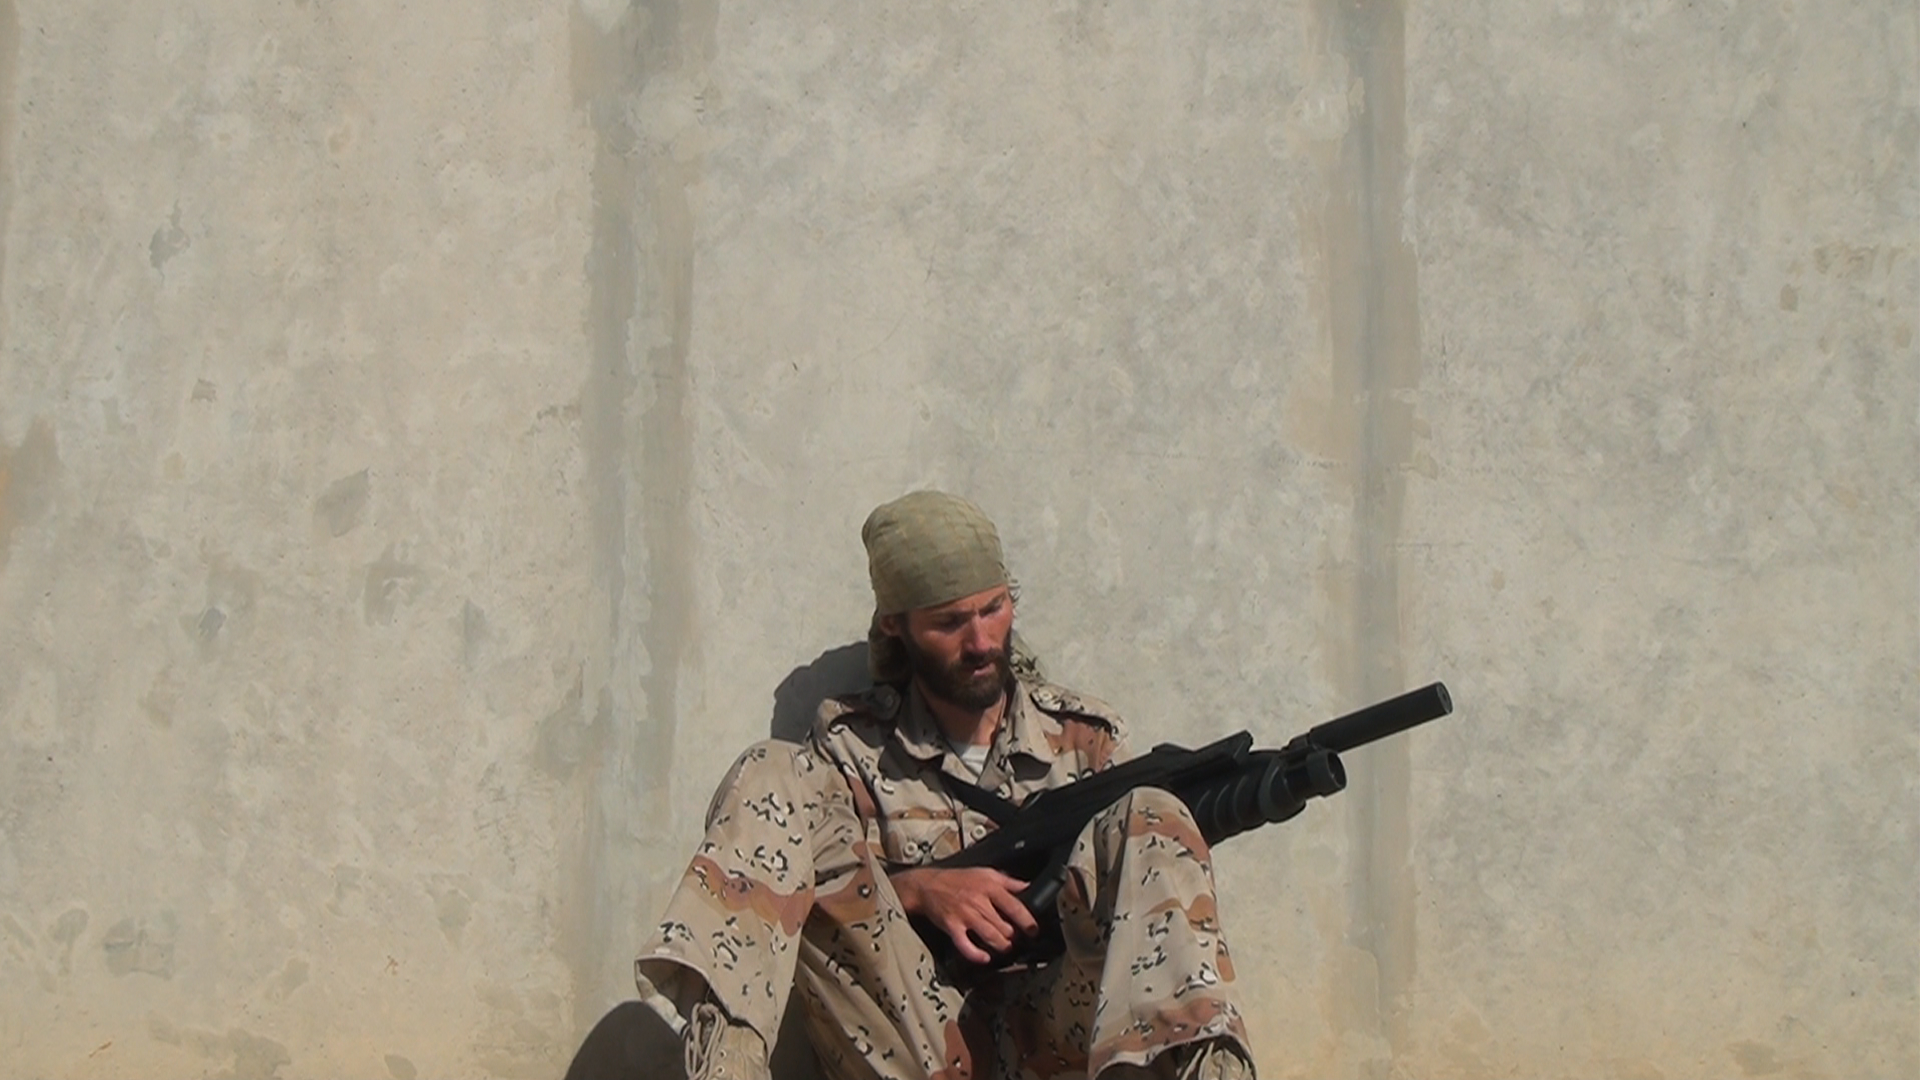 American seeks private funds to give military training to Iraqi Christians